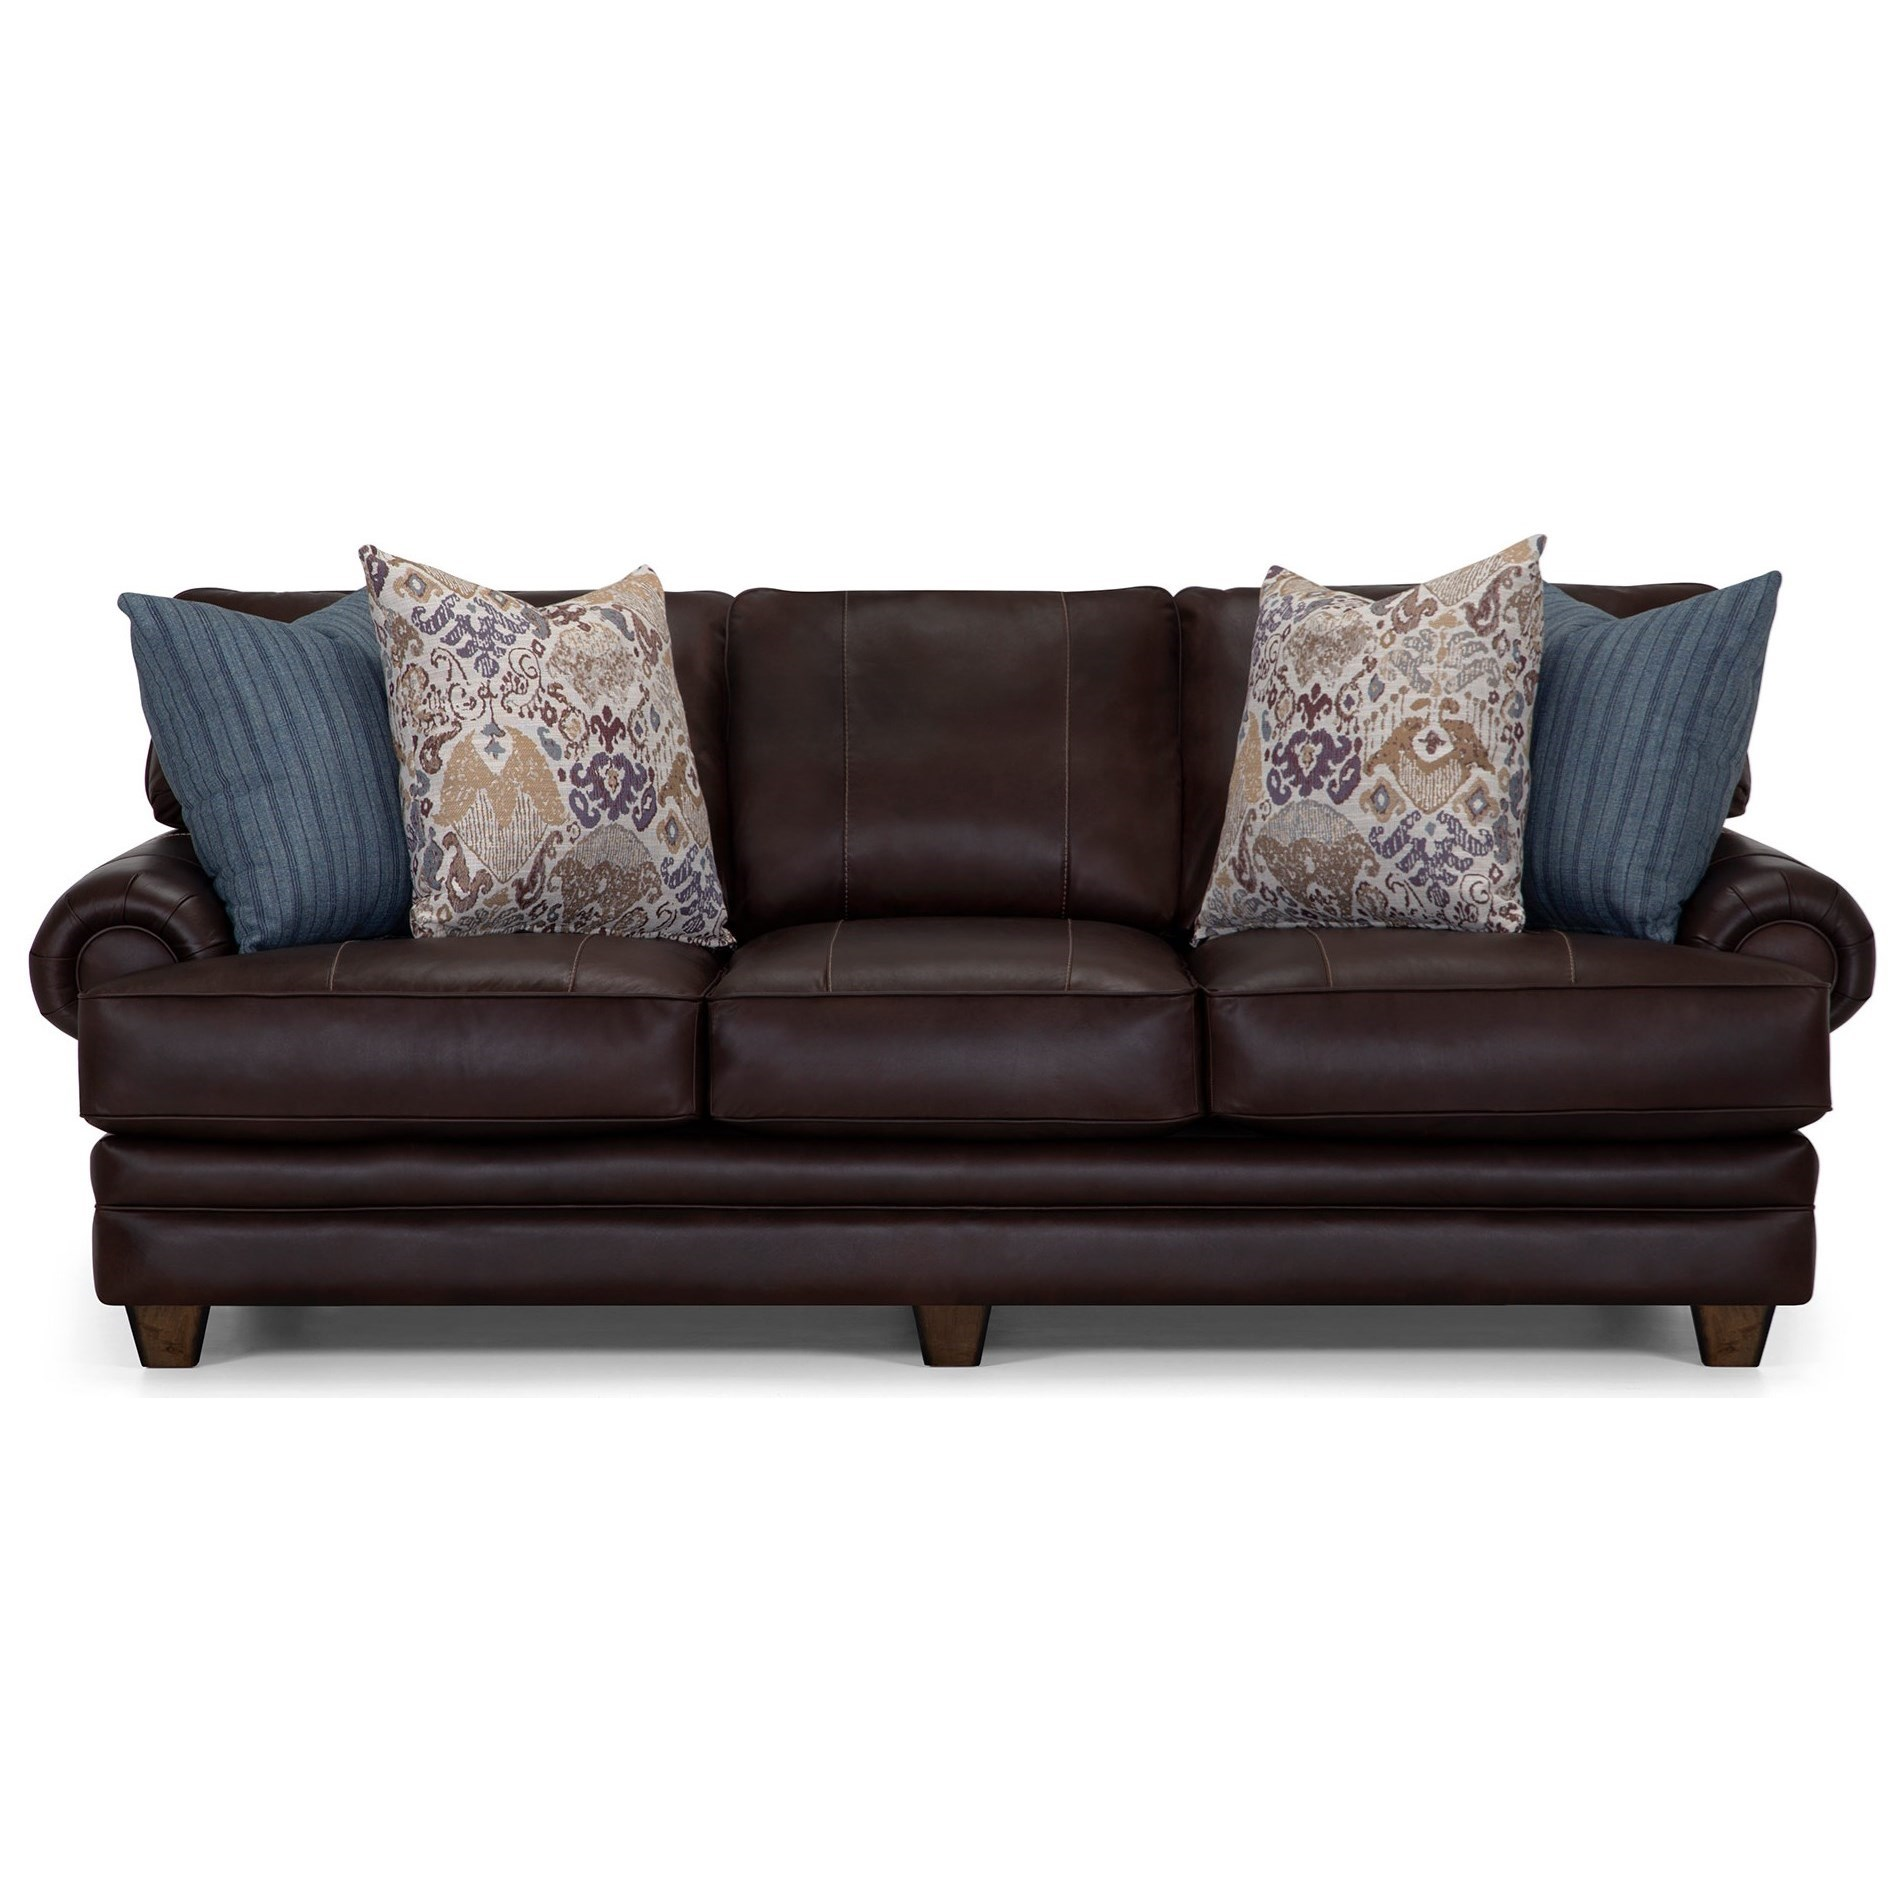 957 Sofa by Franklin at Virginia Furniture Market